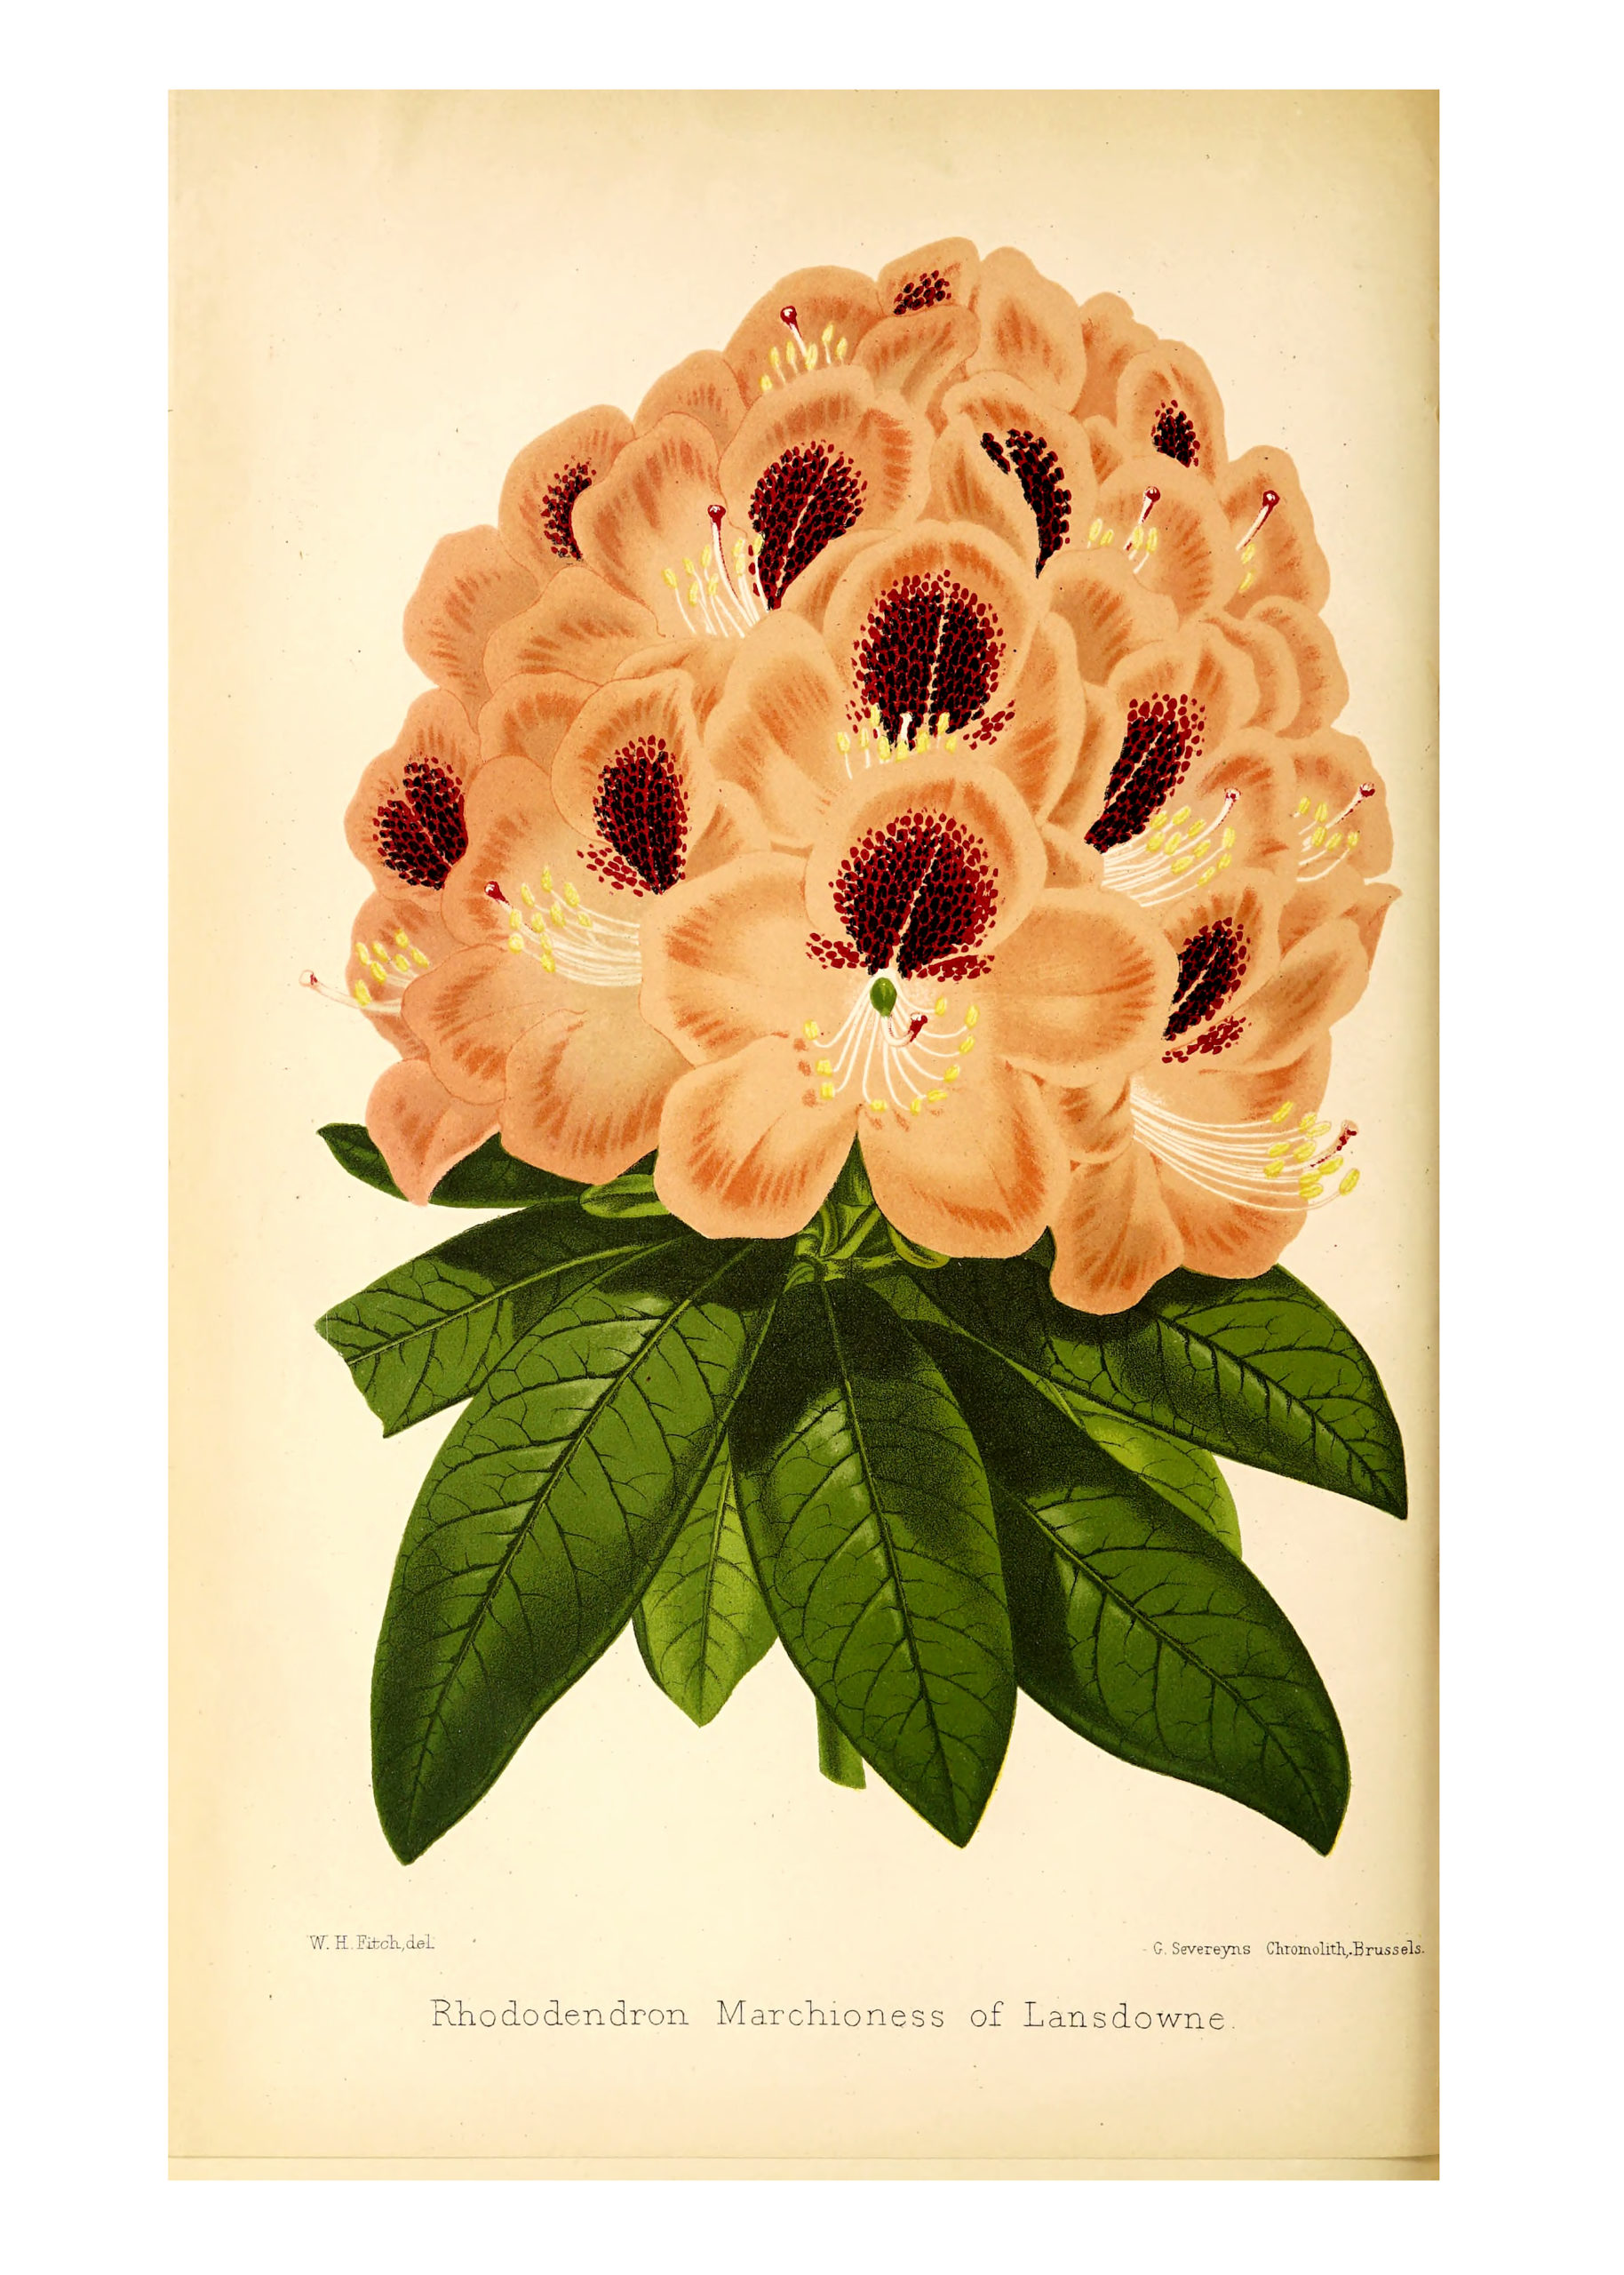 Vintage Botanical Prints - 23 in a series - Rhododendron Marchioness of Landsdowne from The florist and pomologist (1879)